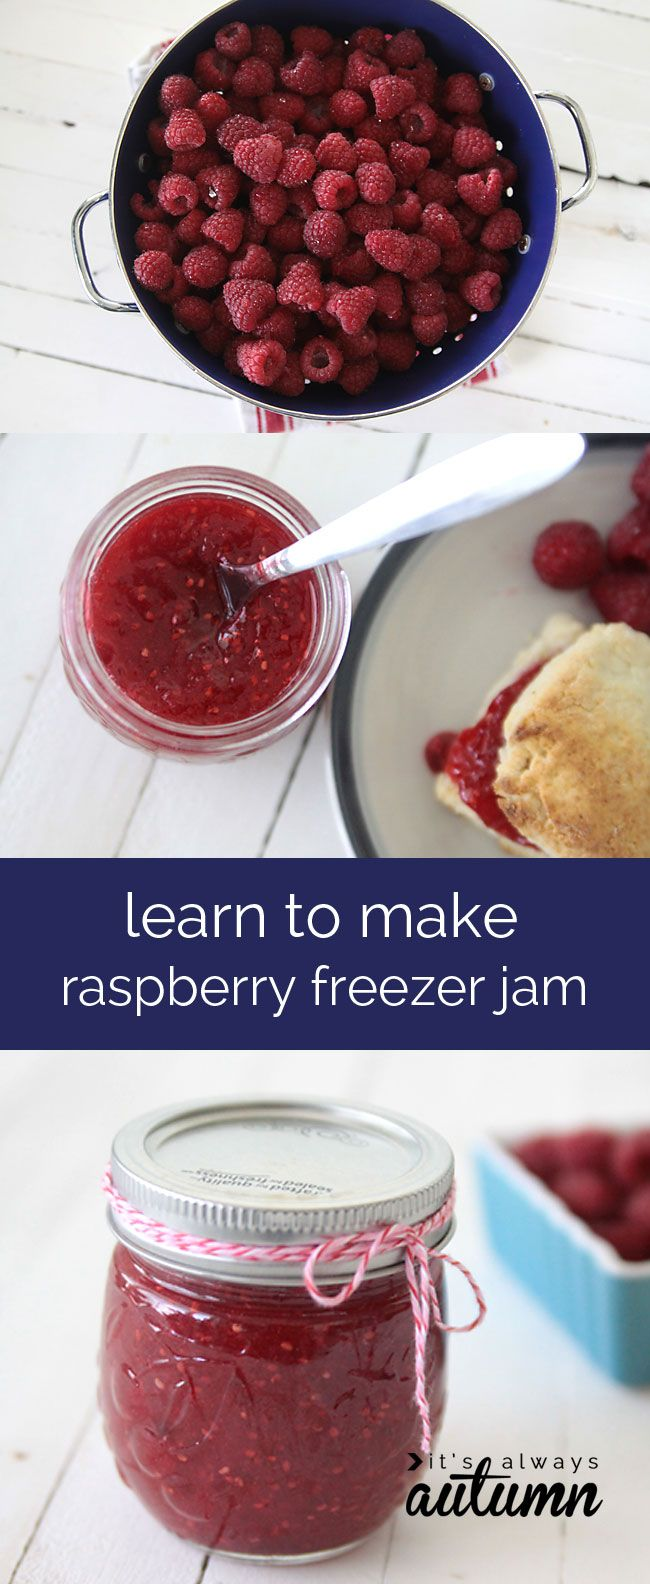 learn how to make homemade raspberry or strawberry freezer jam - it's so much easier than you think!